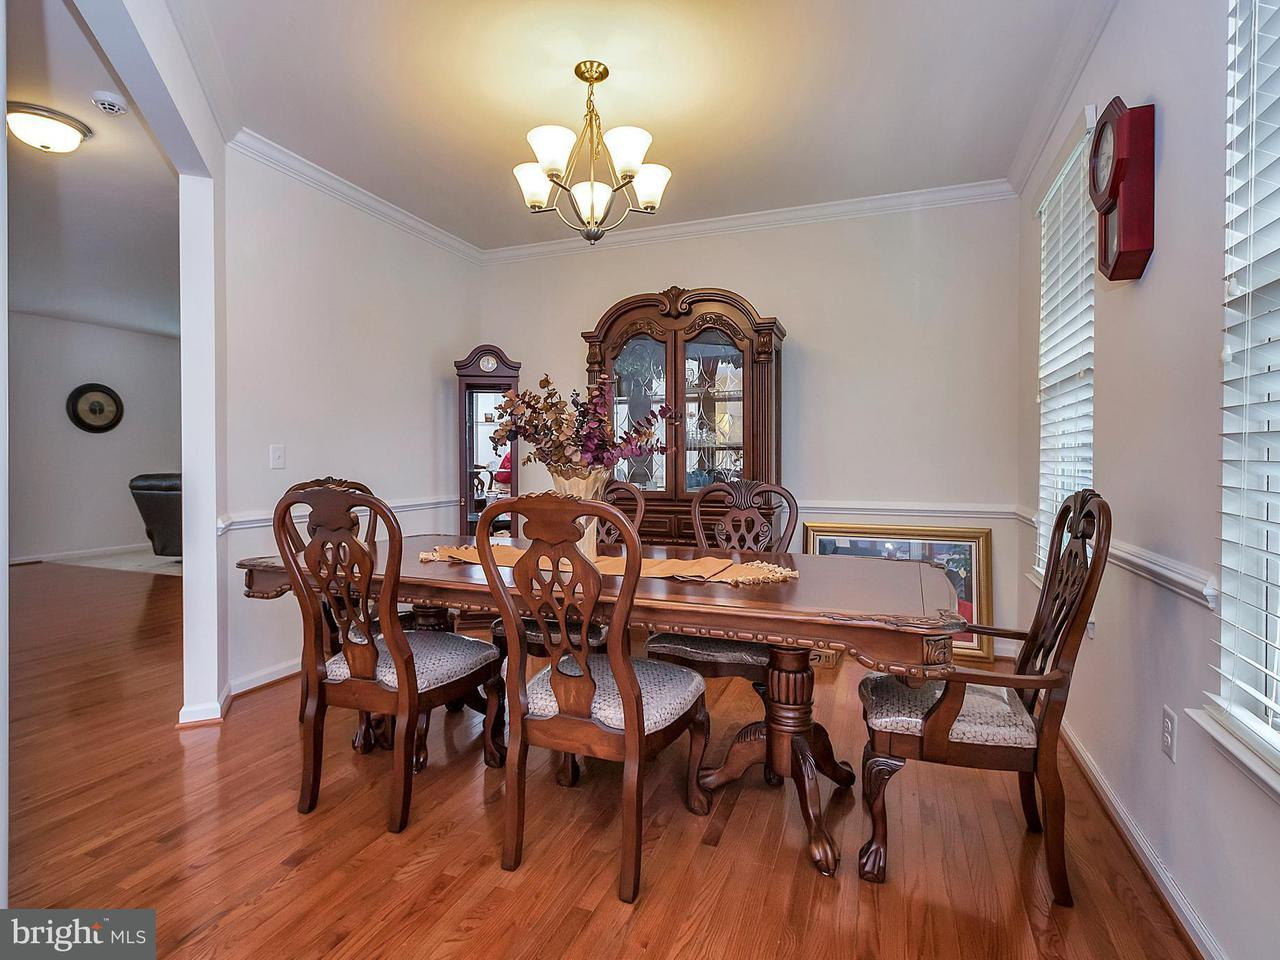 Additional photo for property listing at 14 Liberty Knolls Dr  Stafford, Virginia 22554 United States